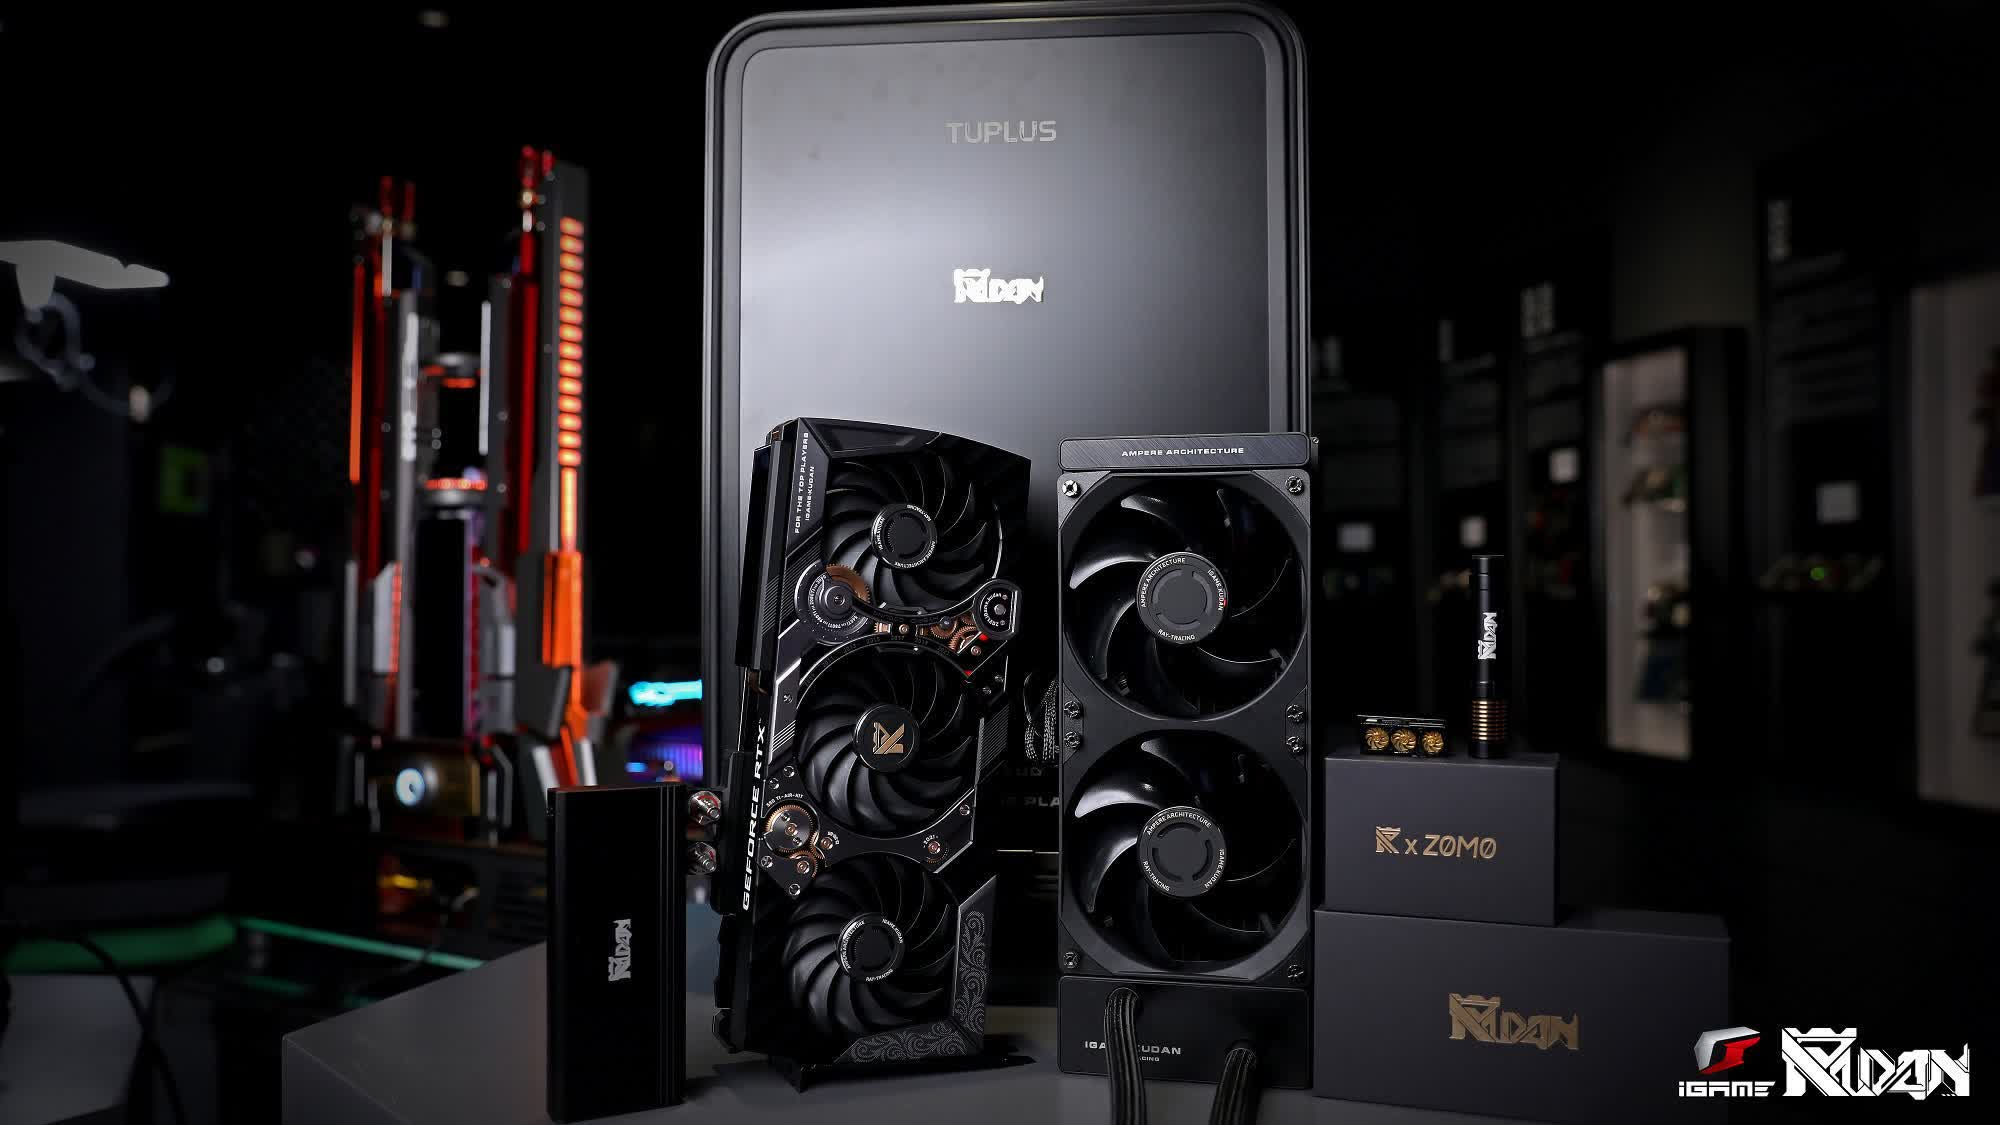 Colorful launches limited edition Kudan RTX 3090 graphics card with $4,999 price tag